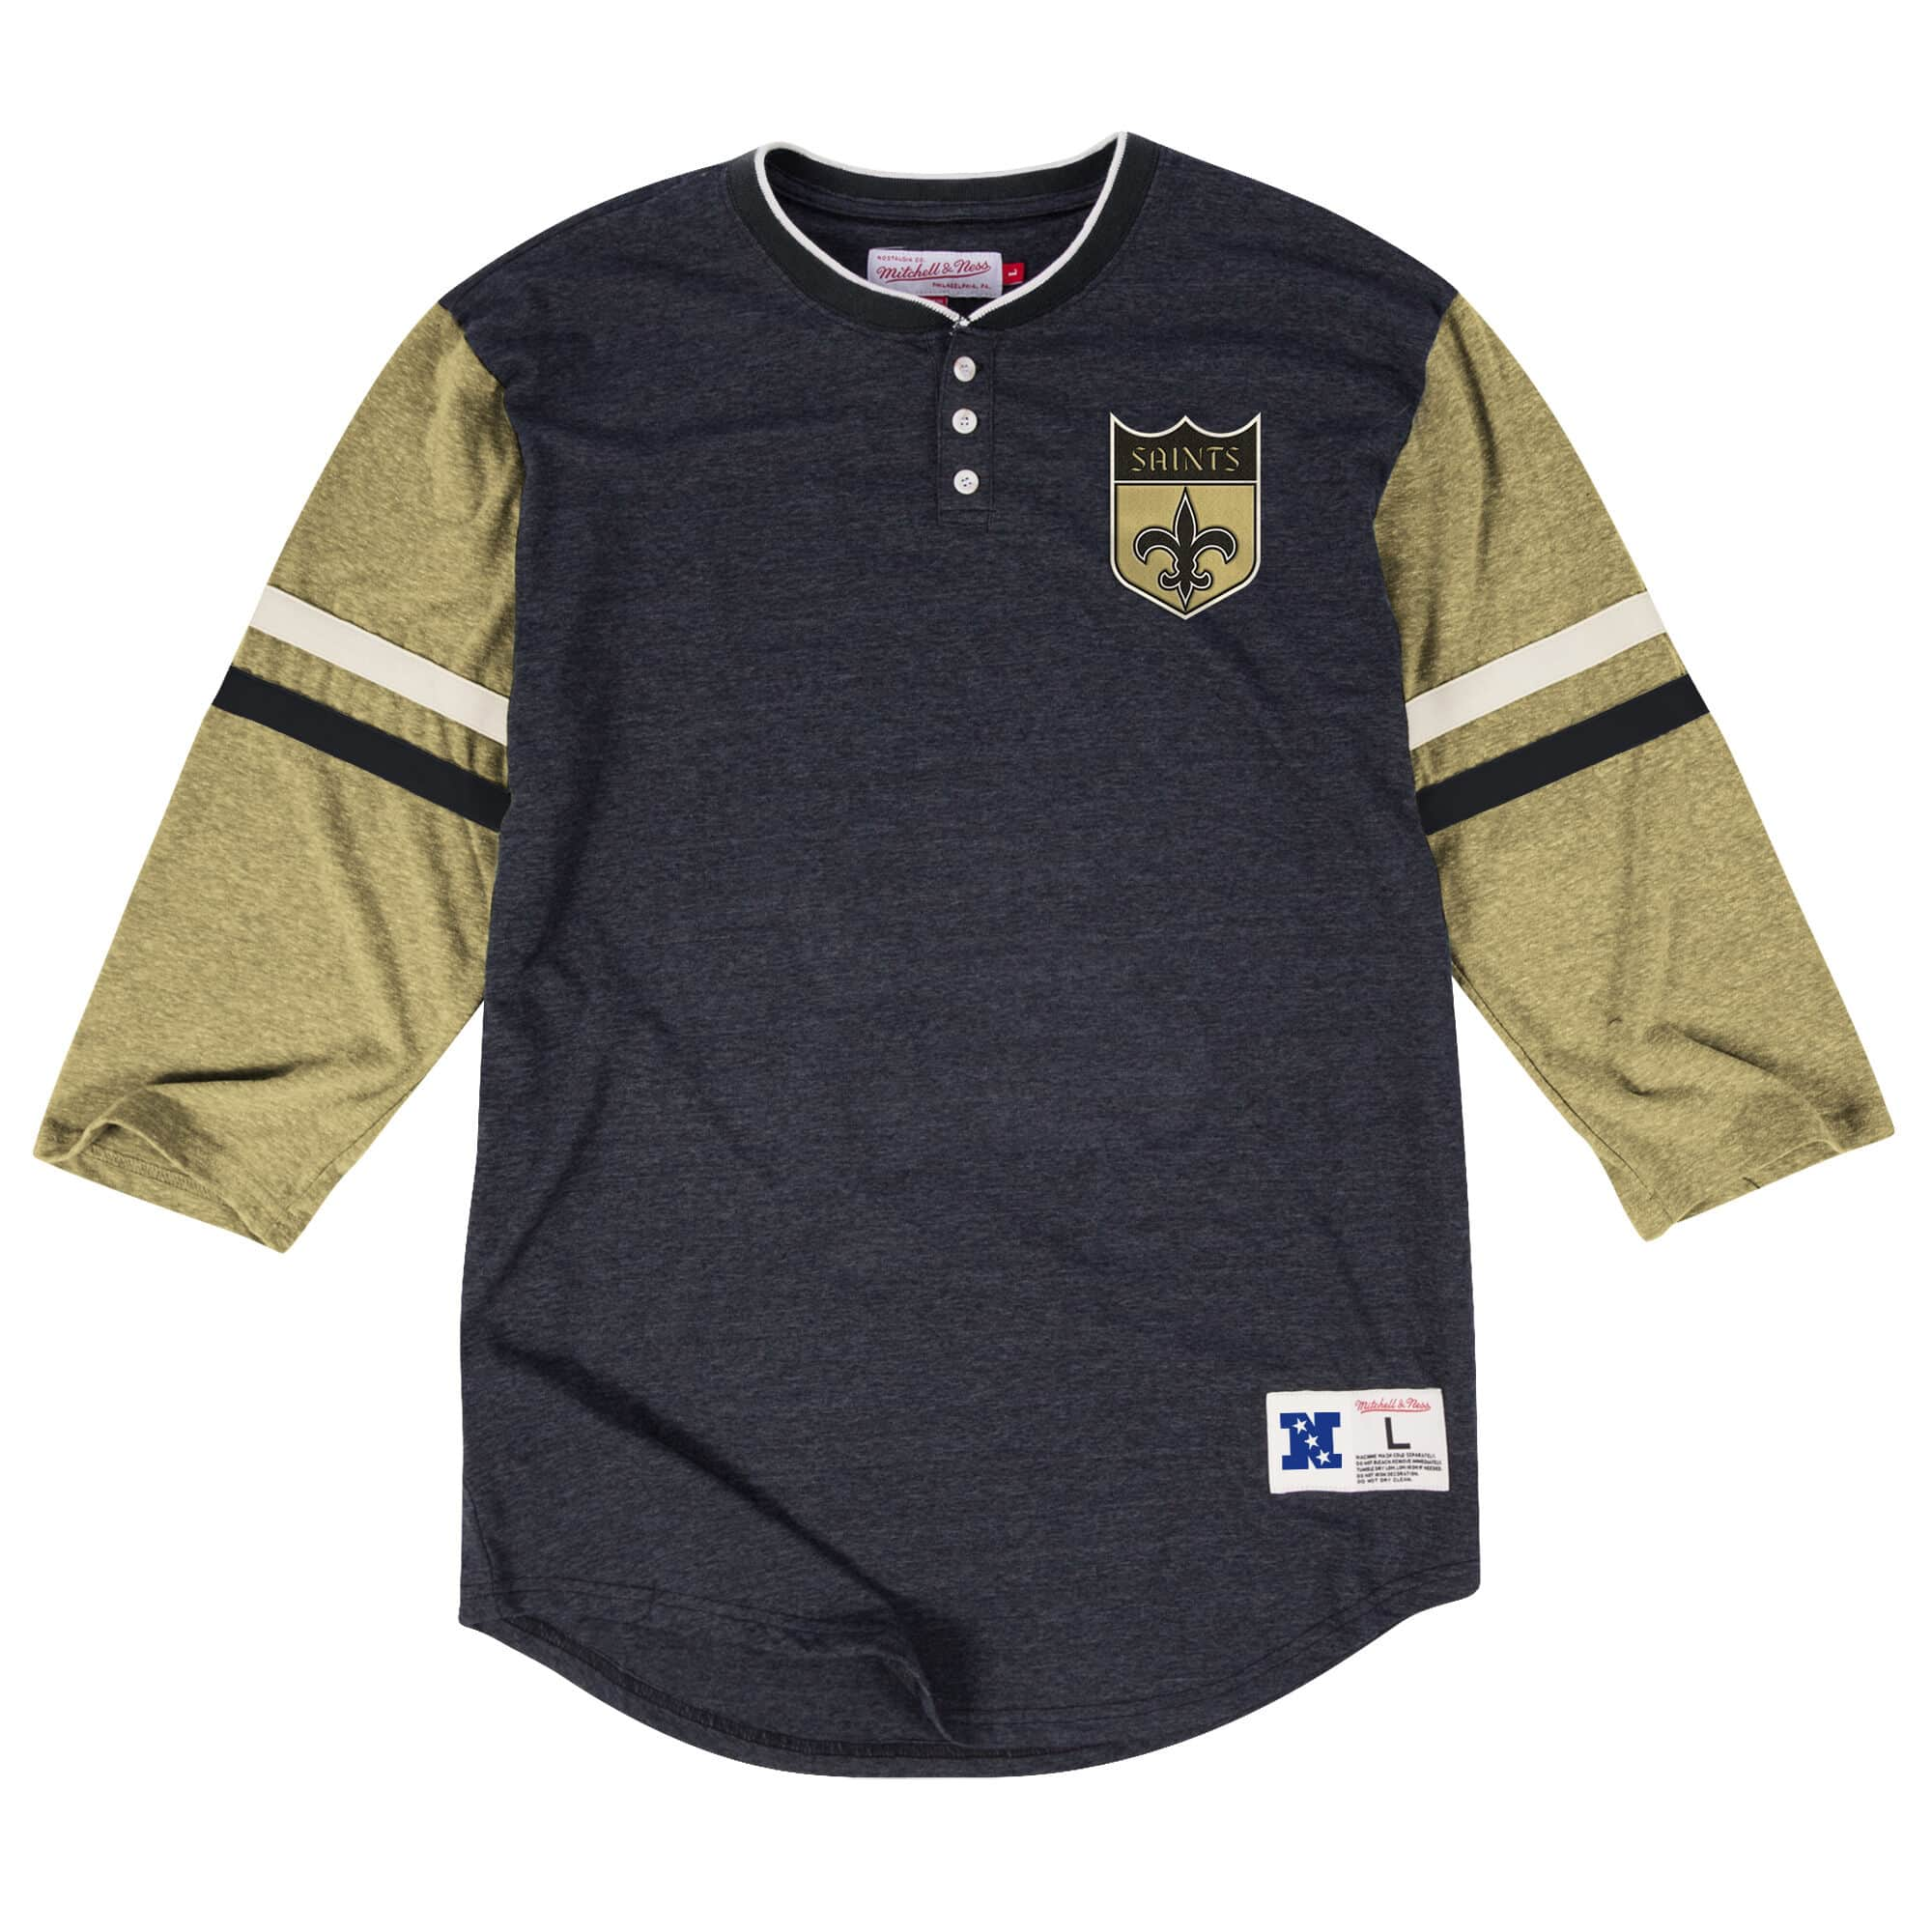 Hot New Orleans Saints : Gravel City Adventure & Supply Co. Licensed